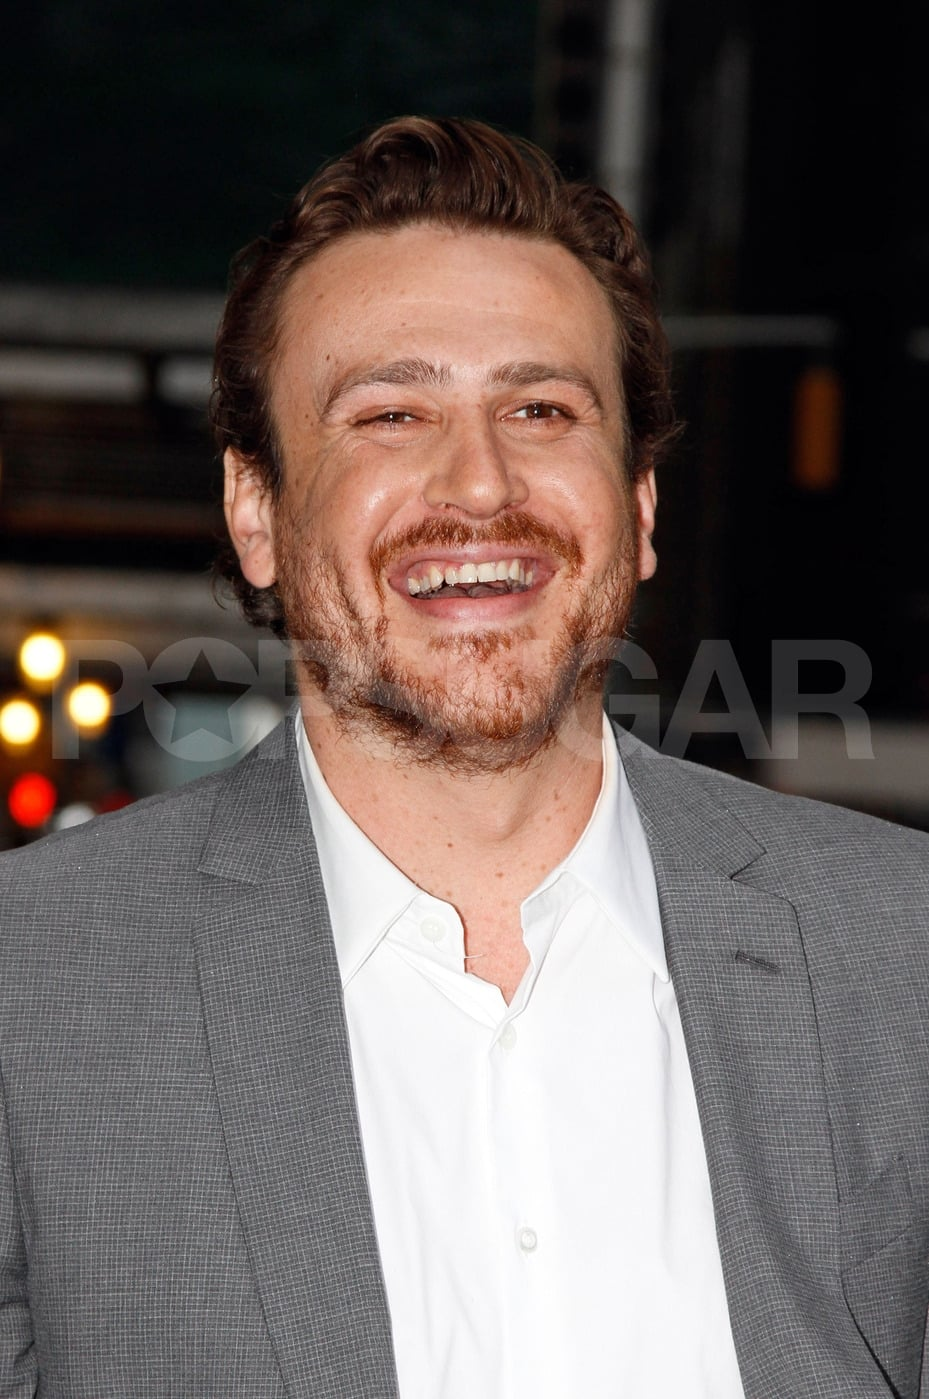 Jason Segel had a laugh on his way to meet Michelle Williams for a dinner date in NYC.